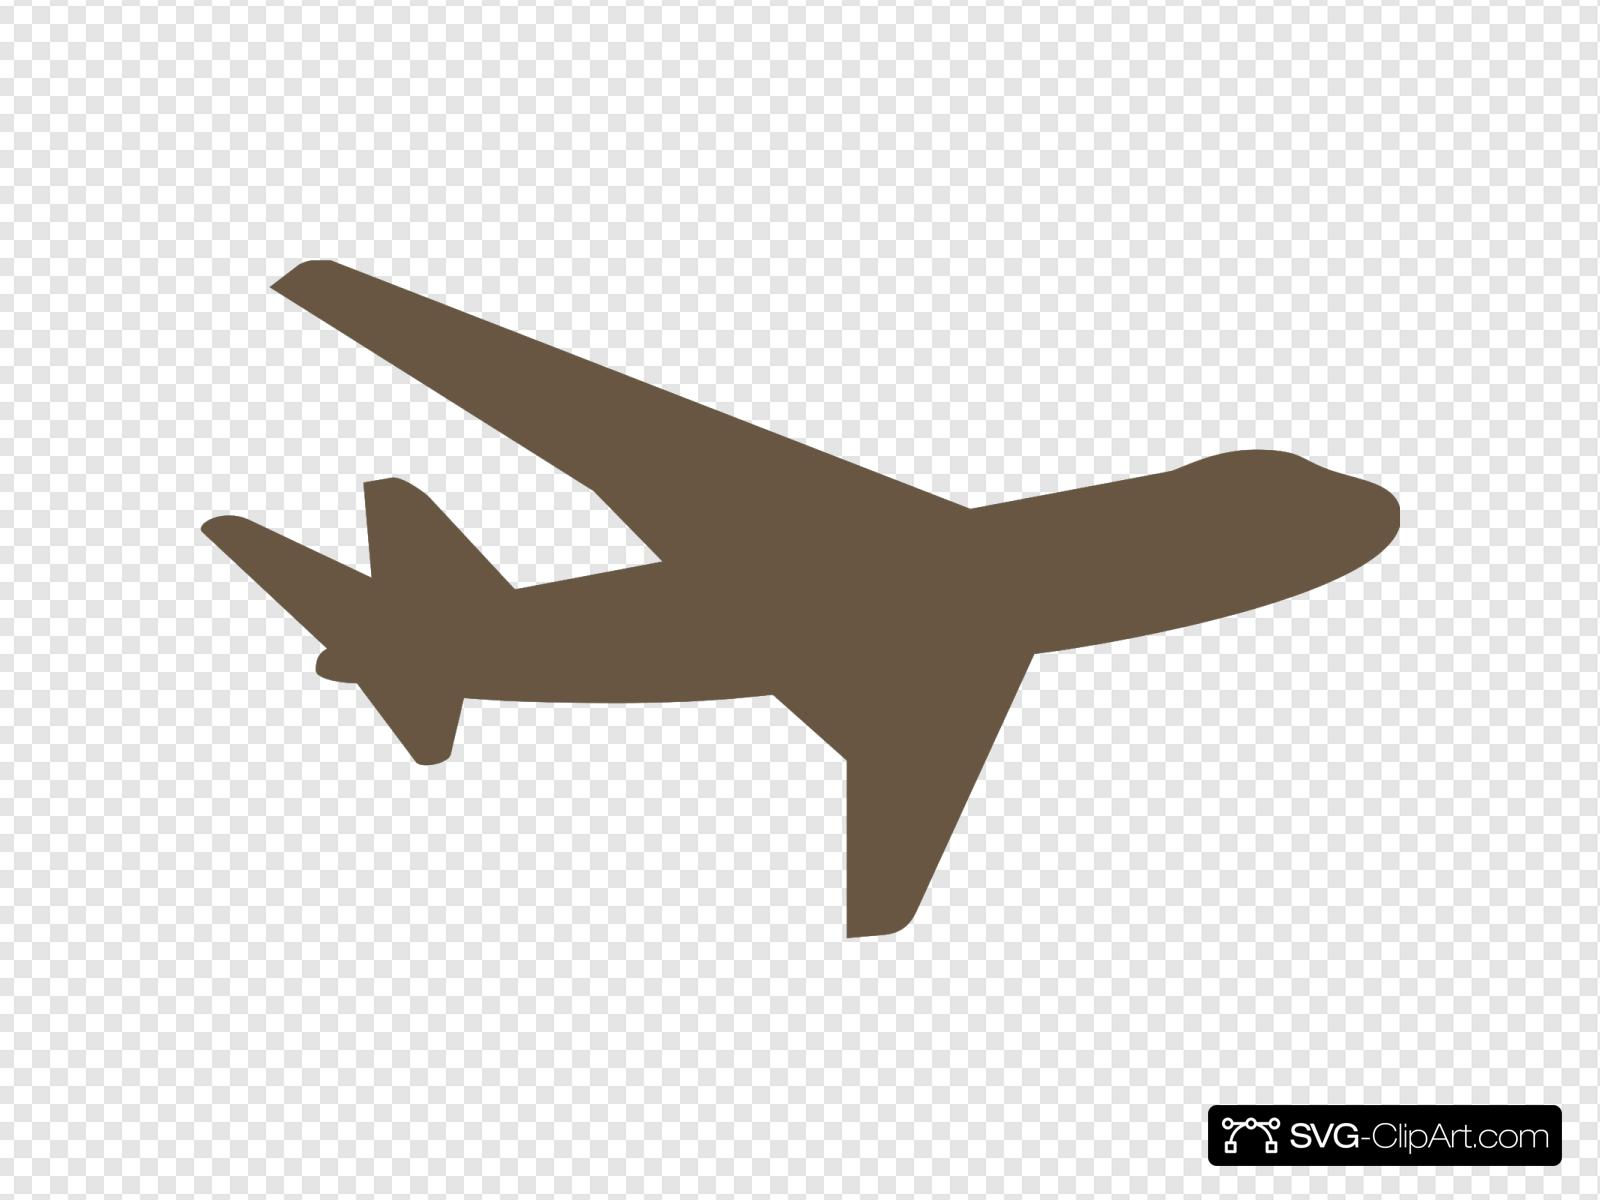 Brown Plane Clip Art Icon And Svg Svg Clipart